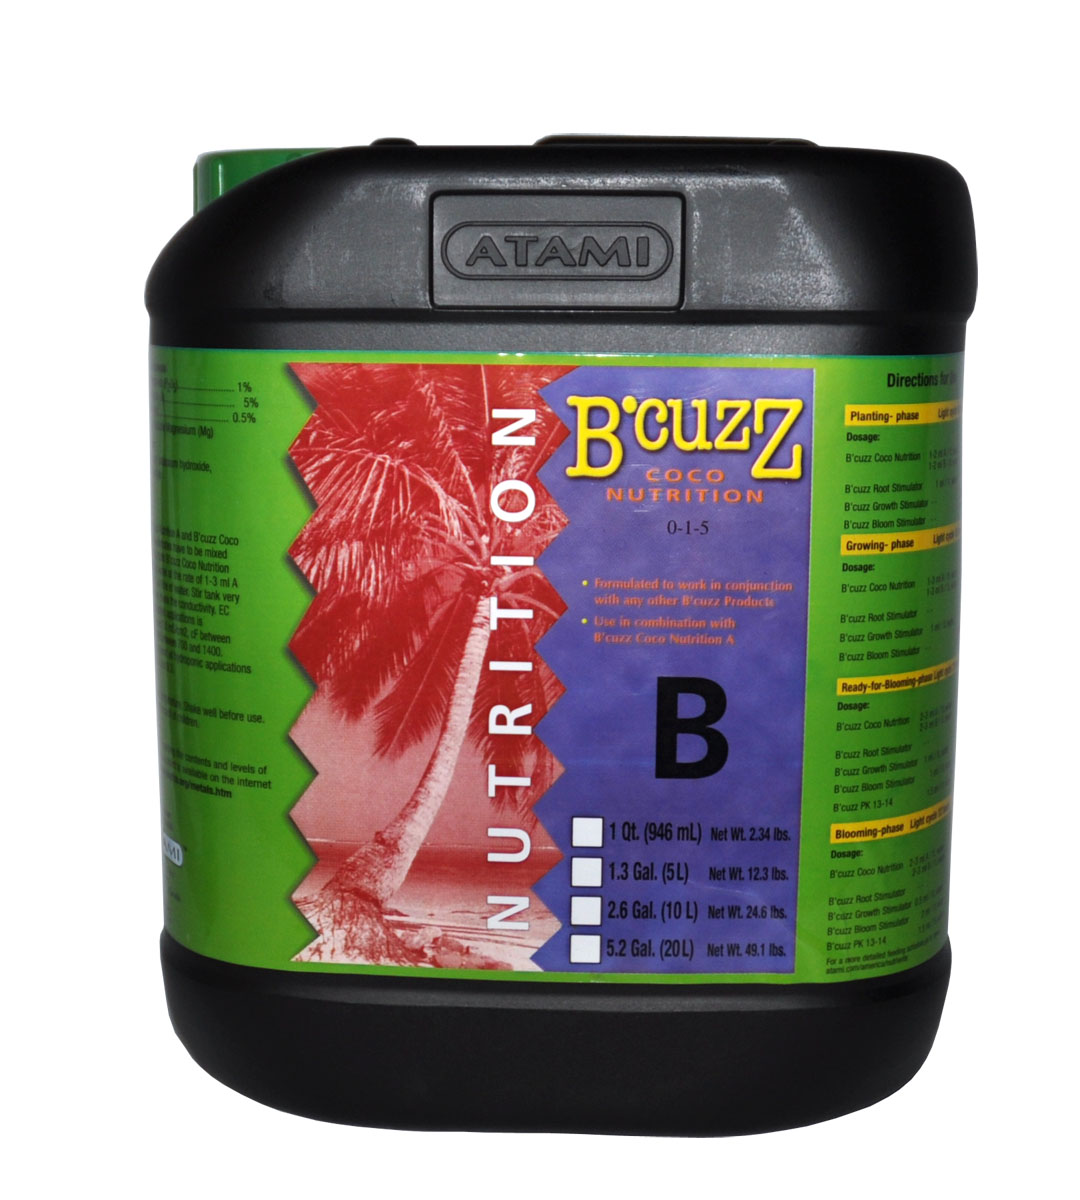 B'Cuzz Coco Nutrition Component B 5 L